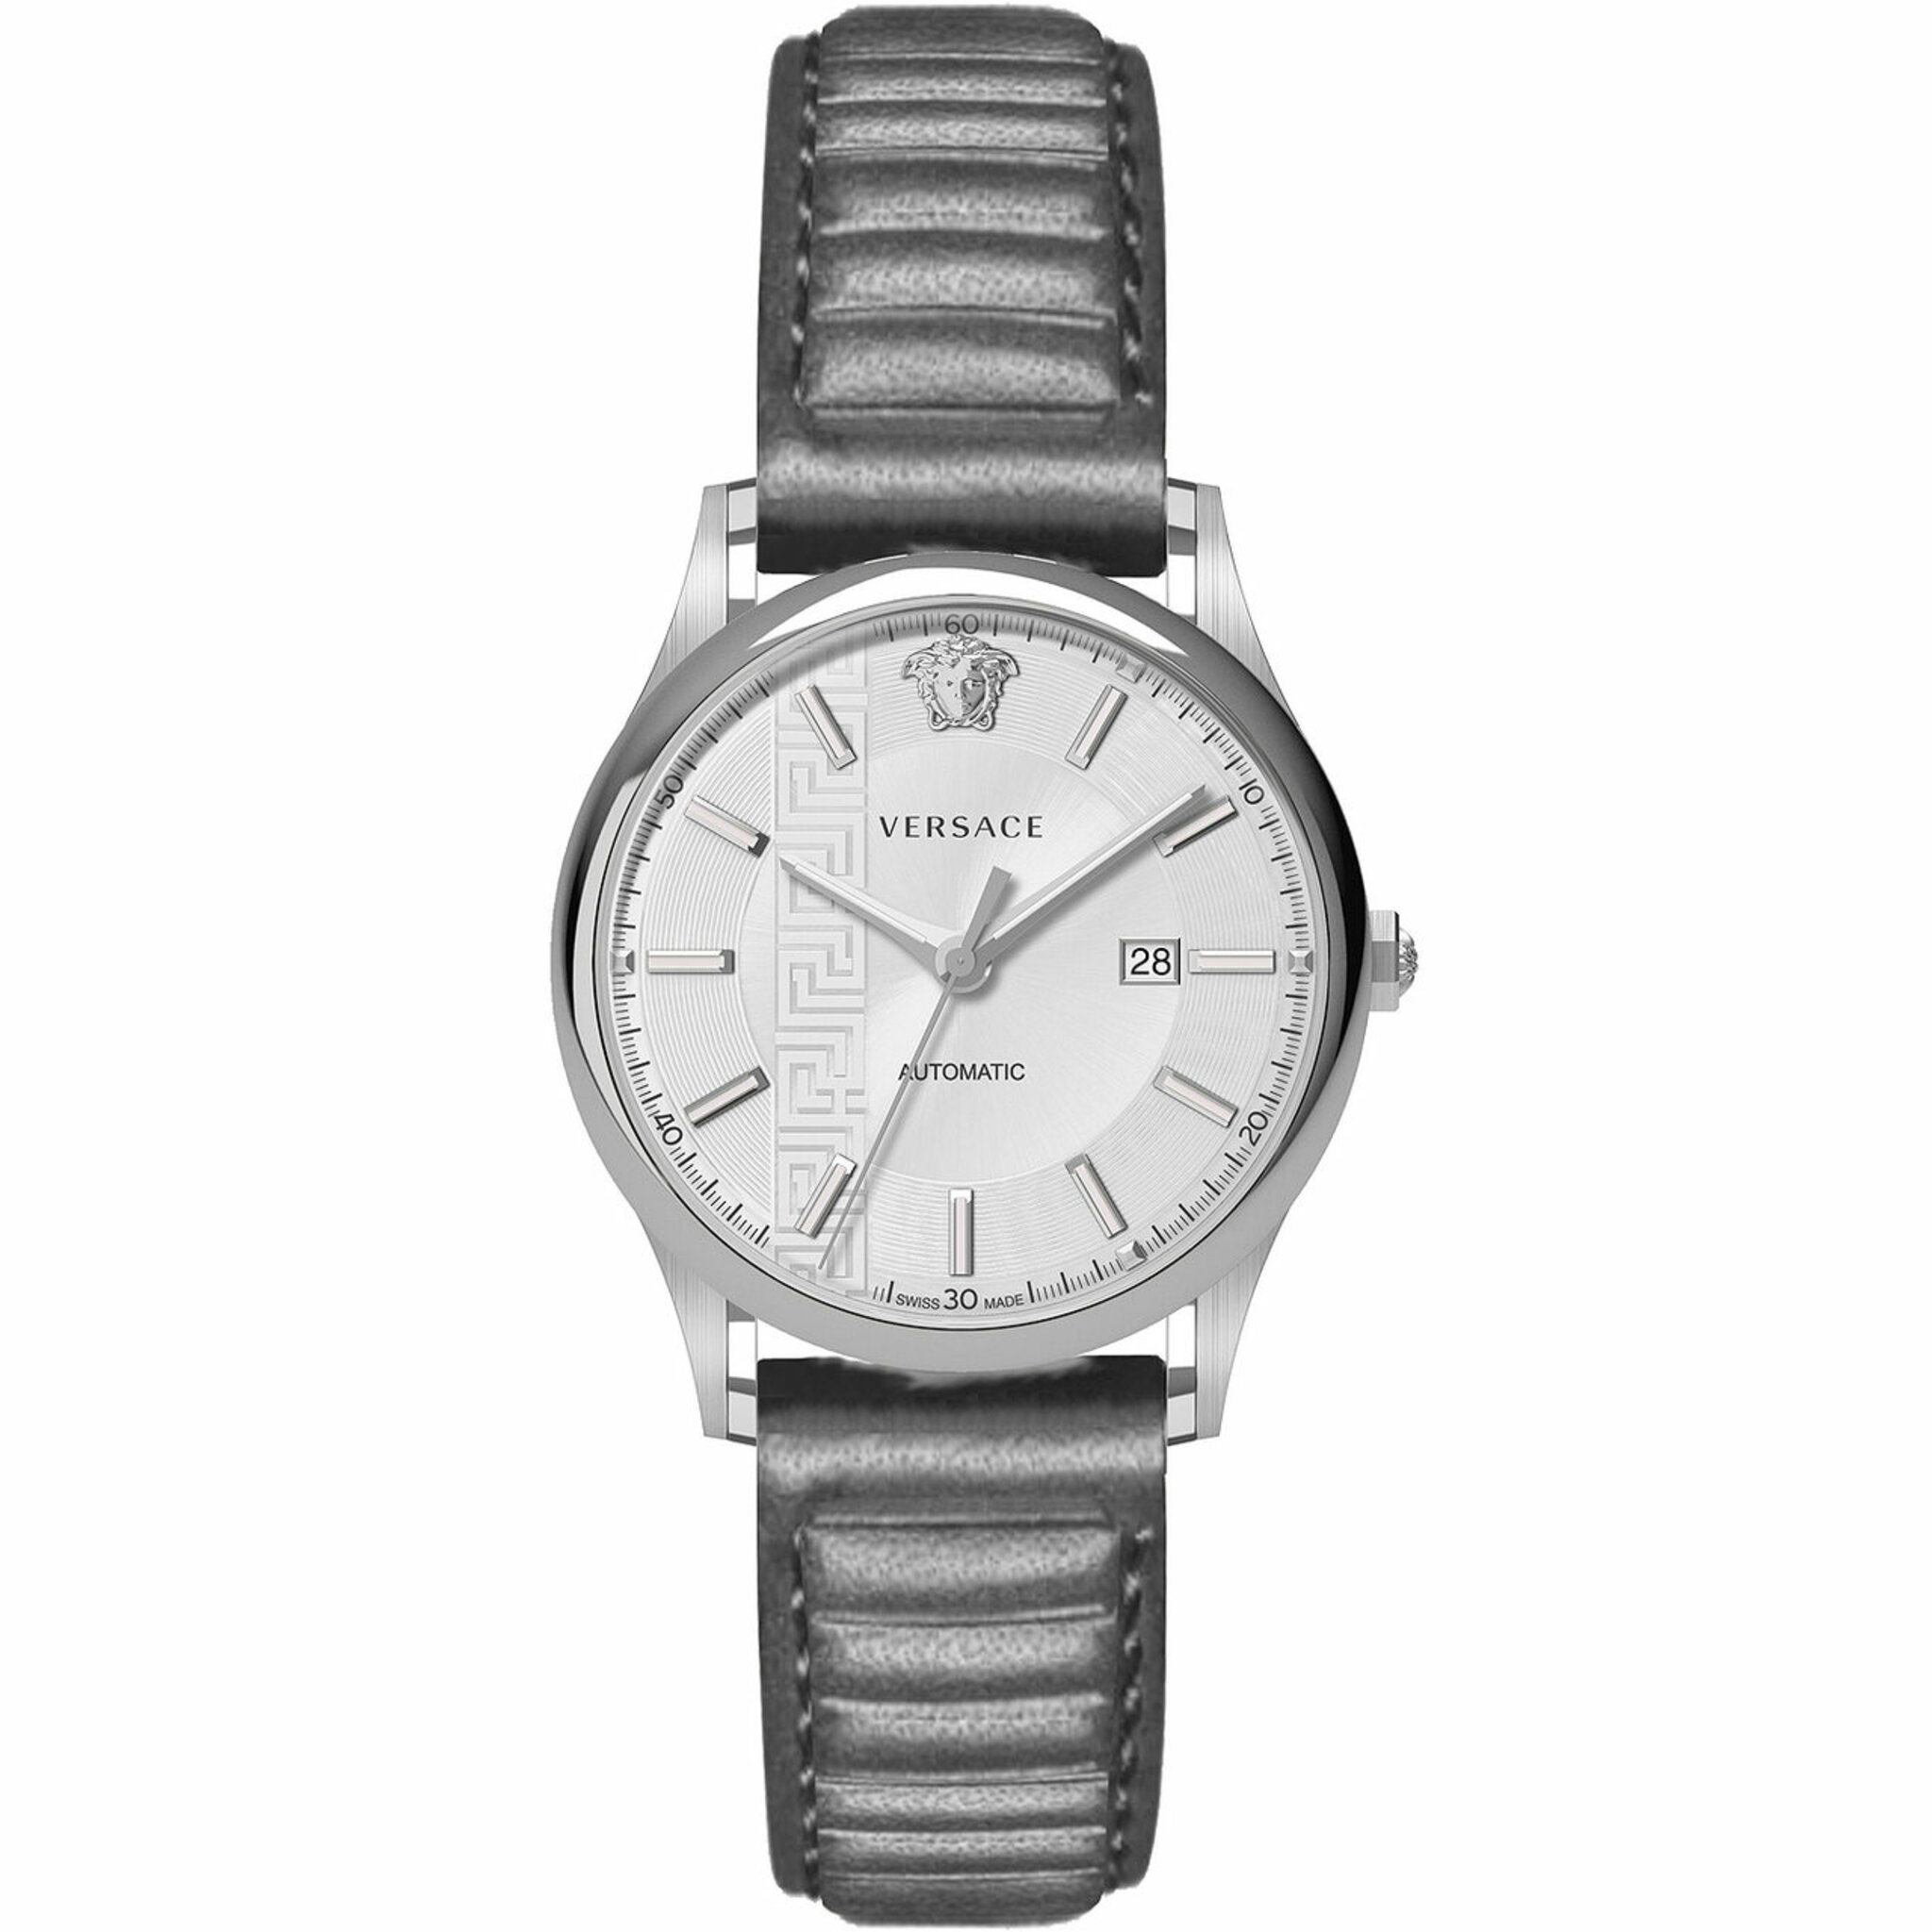 V18010017, Automatic, 44mm, 5atm, silver